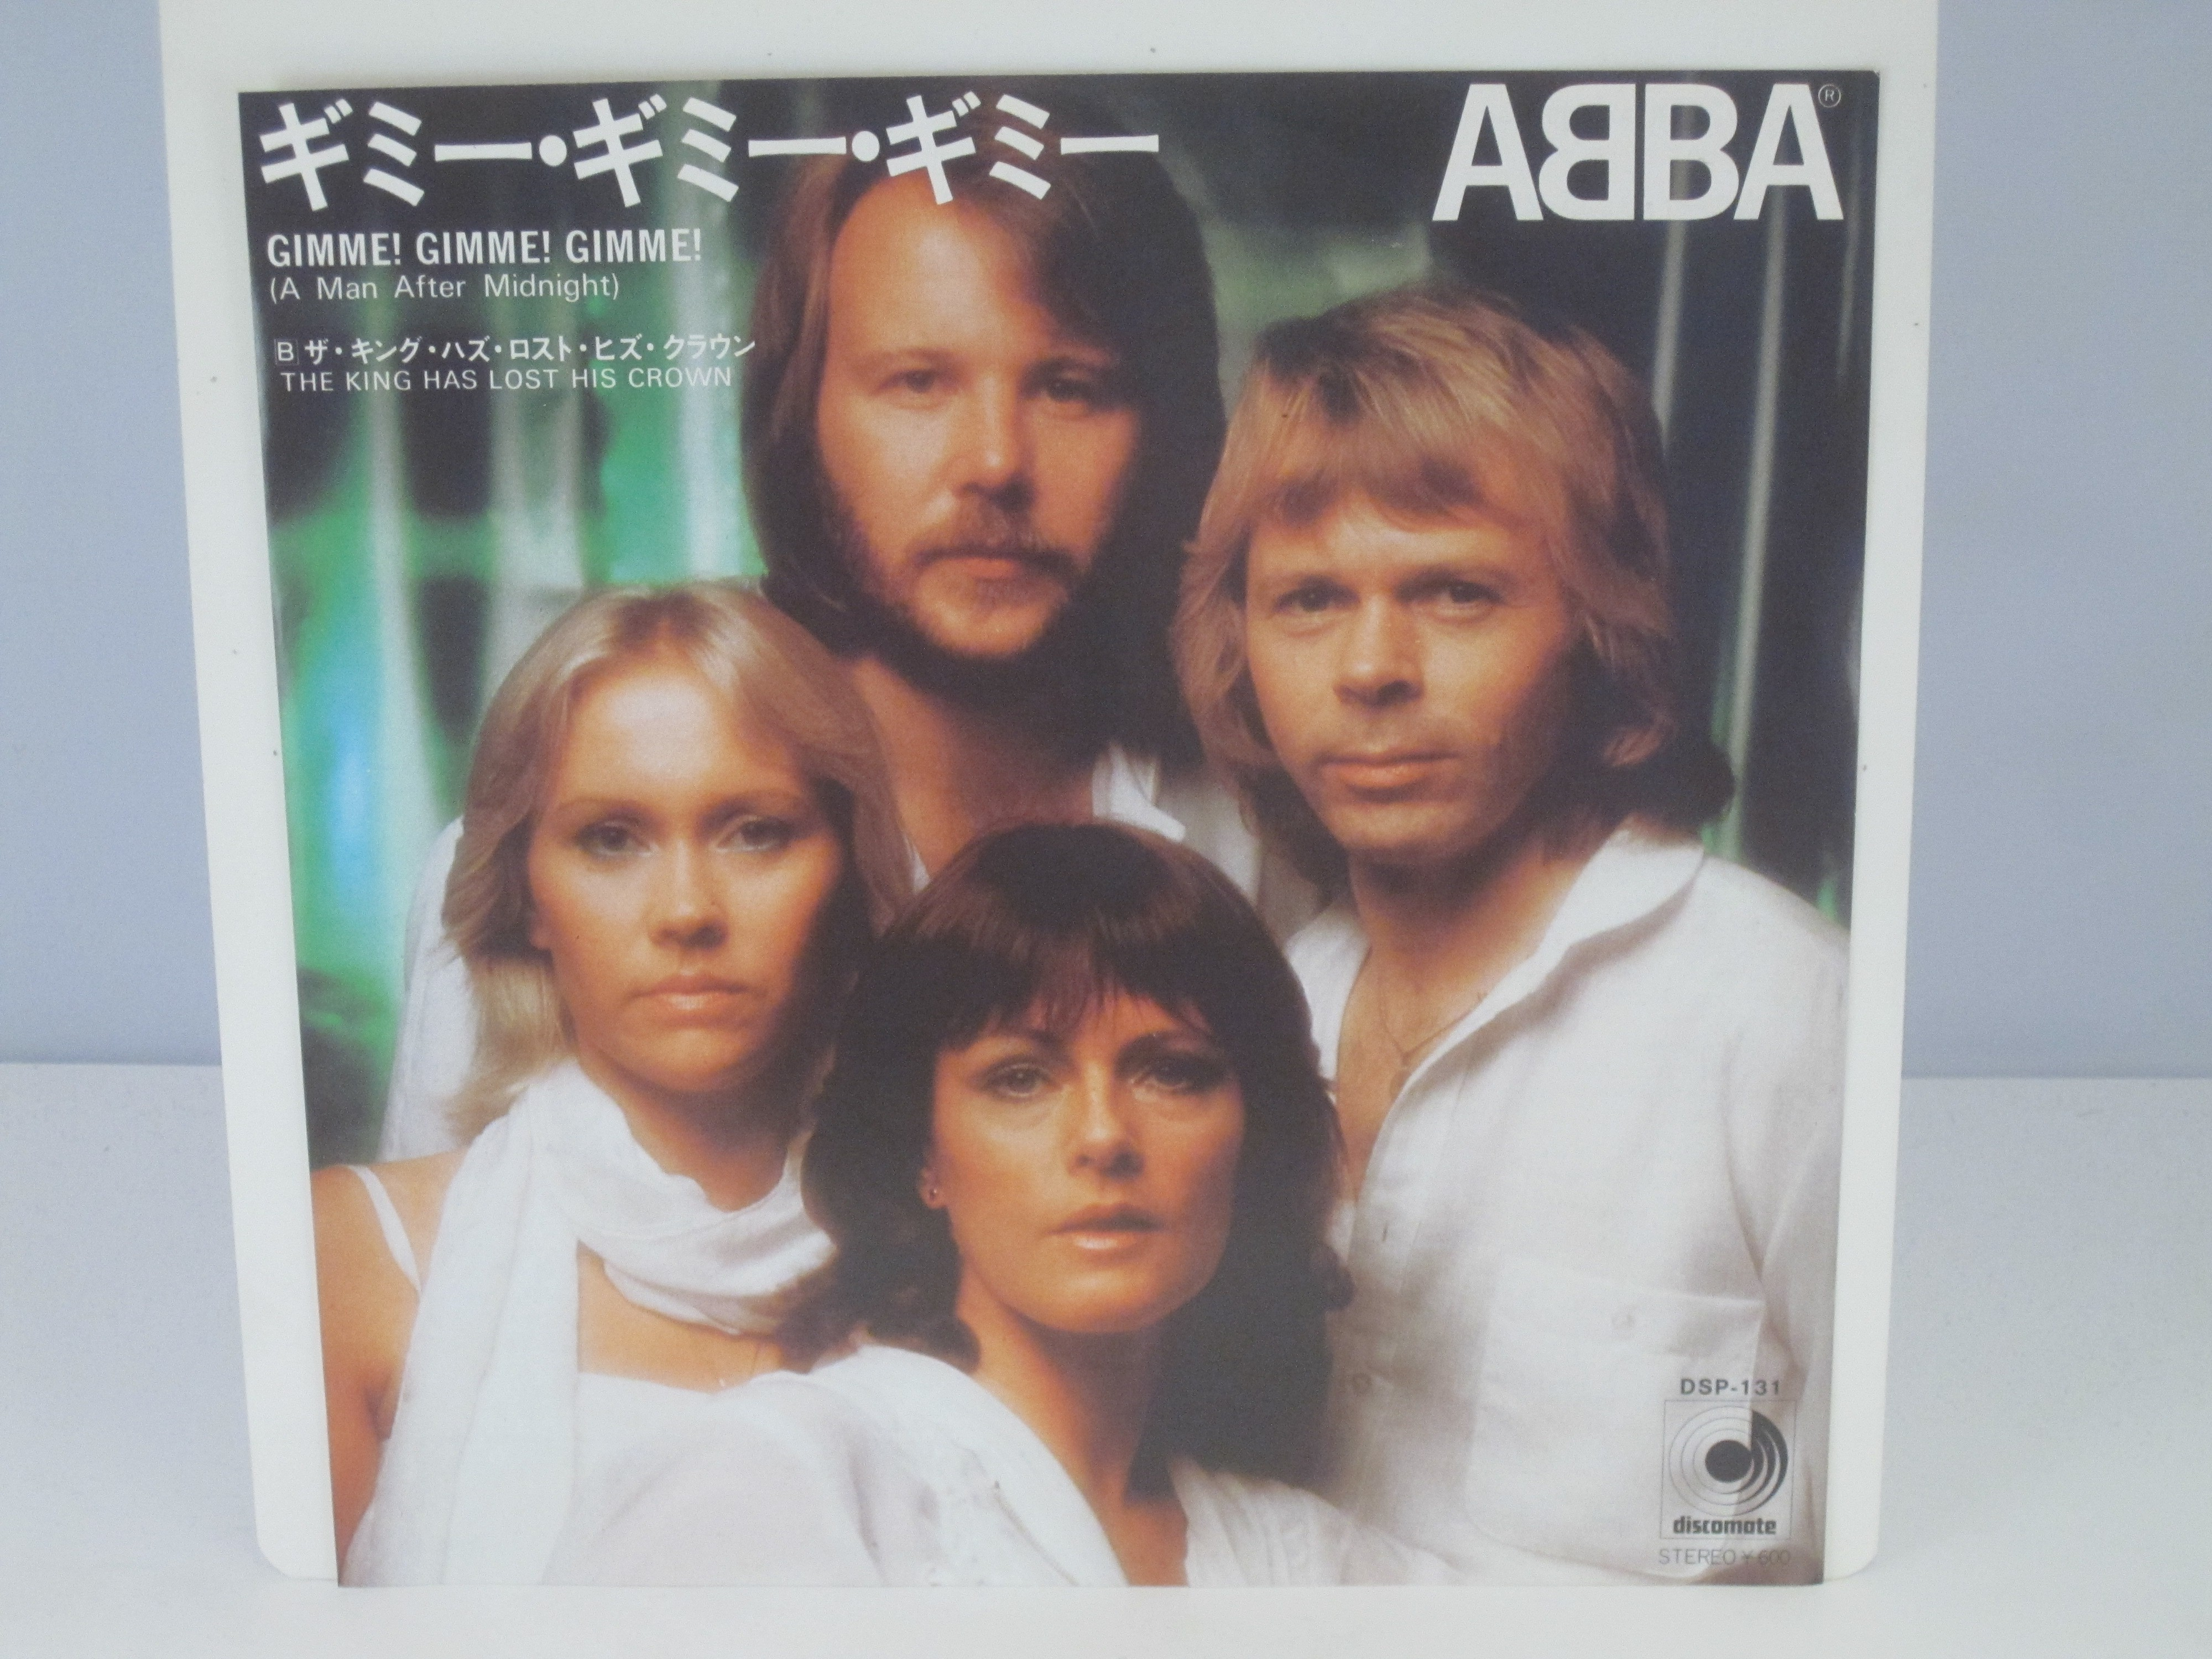 ABBA : Gimme! Gimme! Gimme! / The king has lost his crown